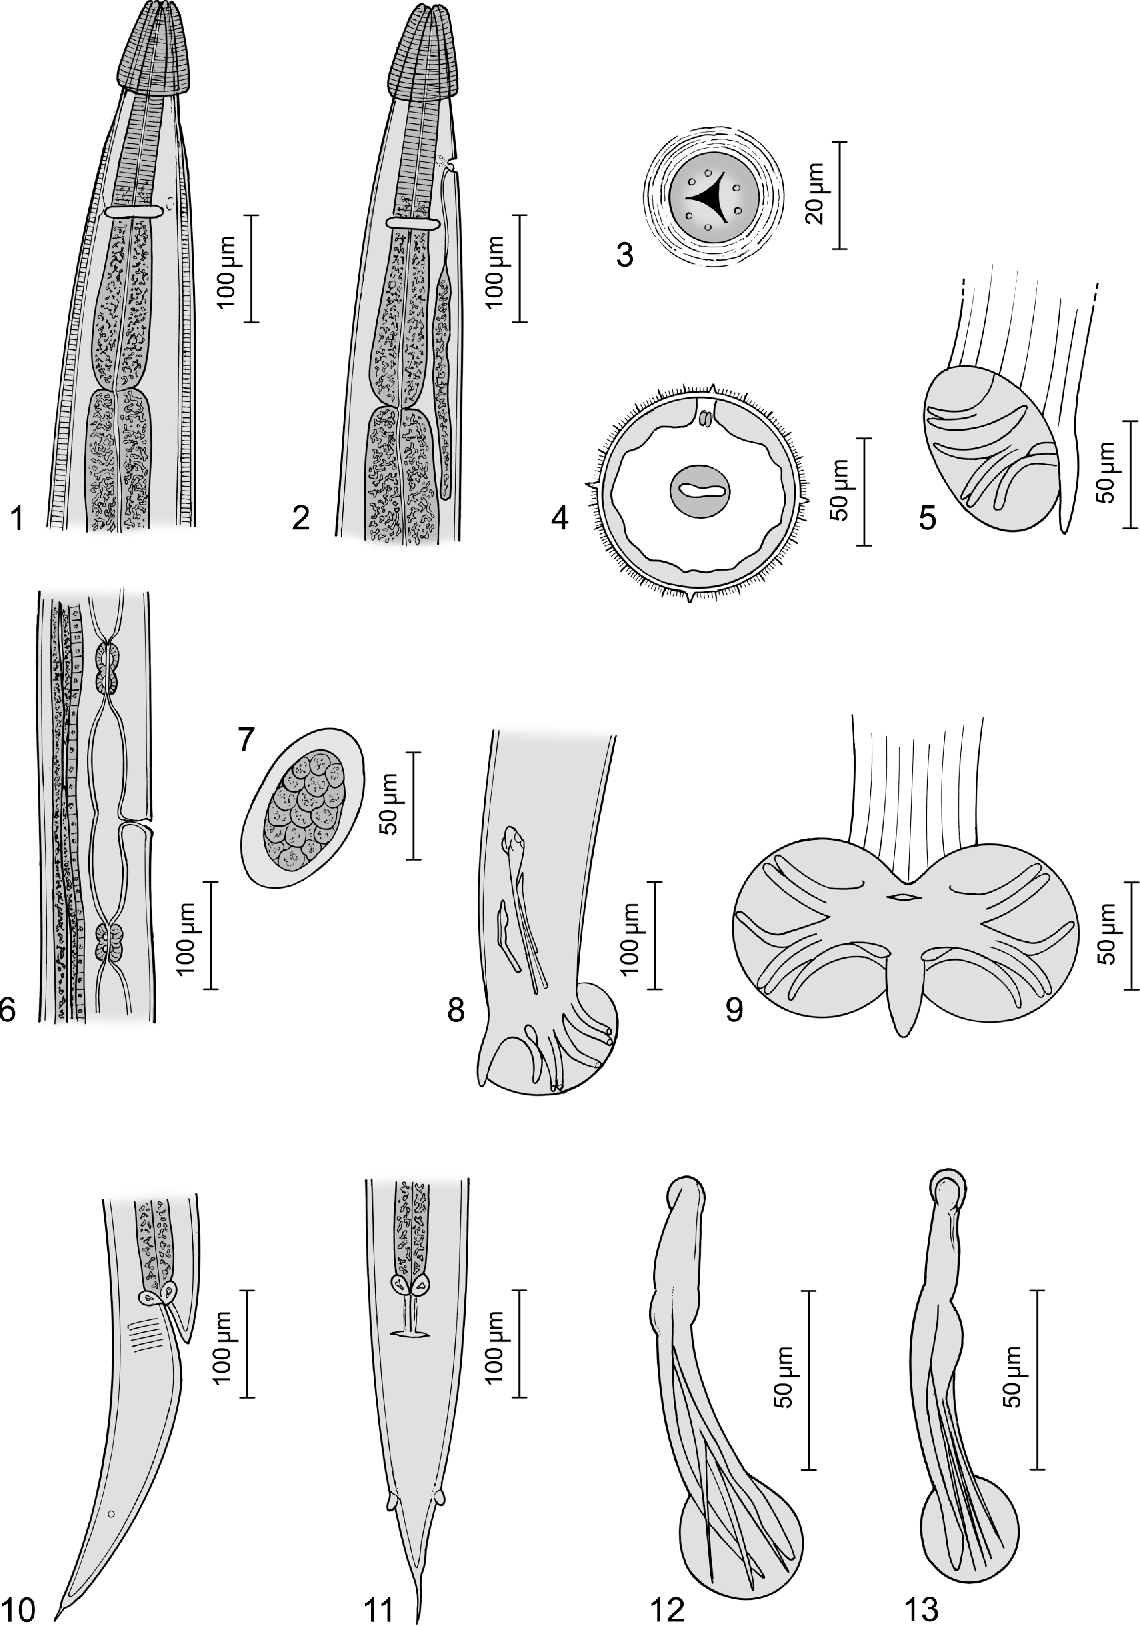 New species of bakeria nematoda strongylida molineidae new figure 113 pooptronica Gallery